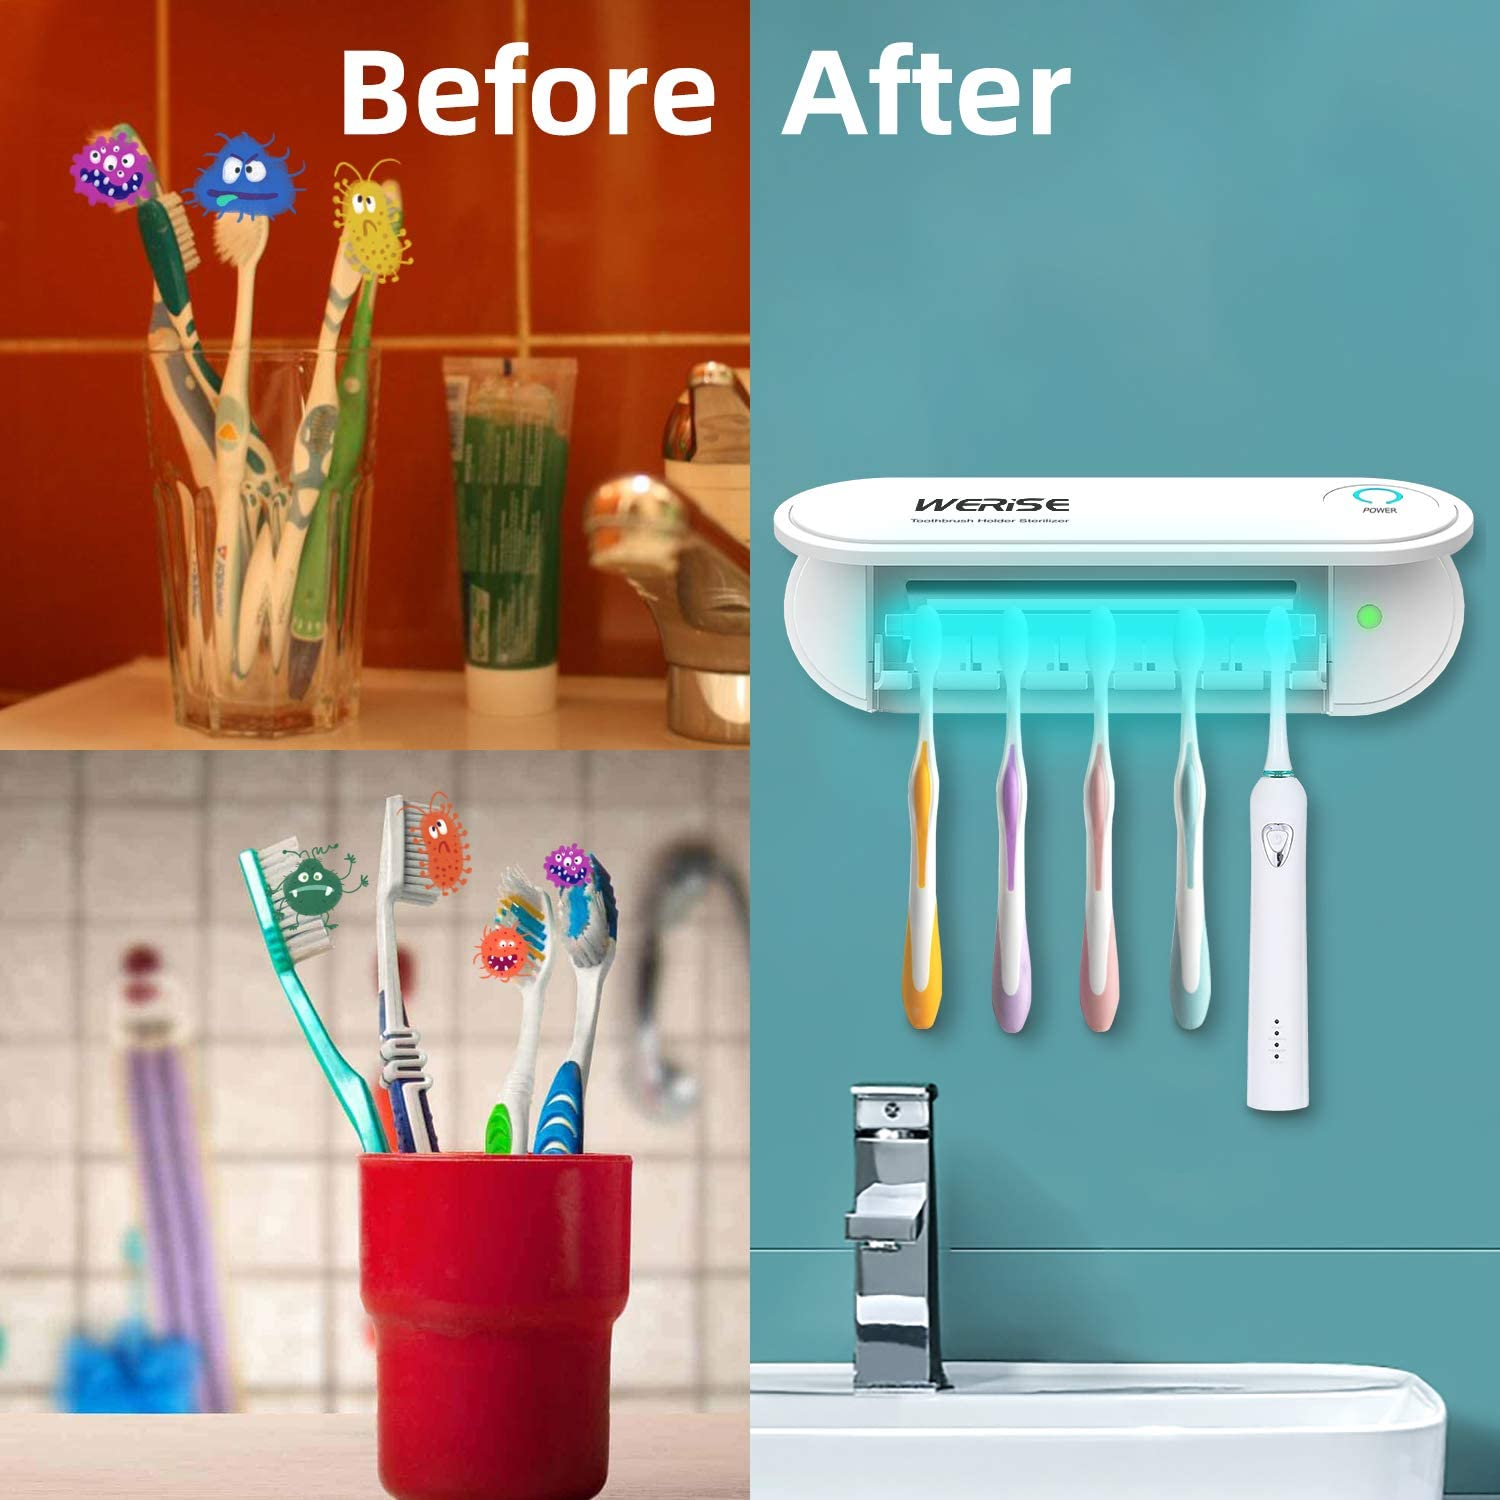 UV Toothbrush Holder Wall Mounted,5 Toothbrush Sterilizer Holder Ultraviolet Light Sterilization /& Drying Function with Two Stickers for Women Kids Baby Bathroom,USB Charging Equipped with Adapter